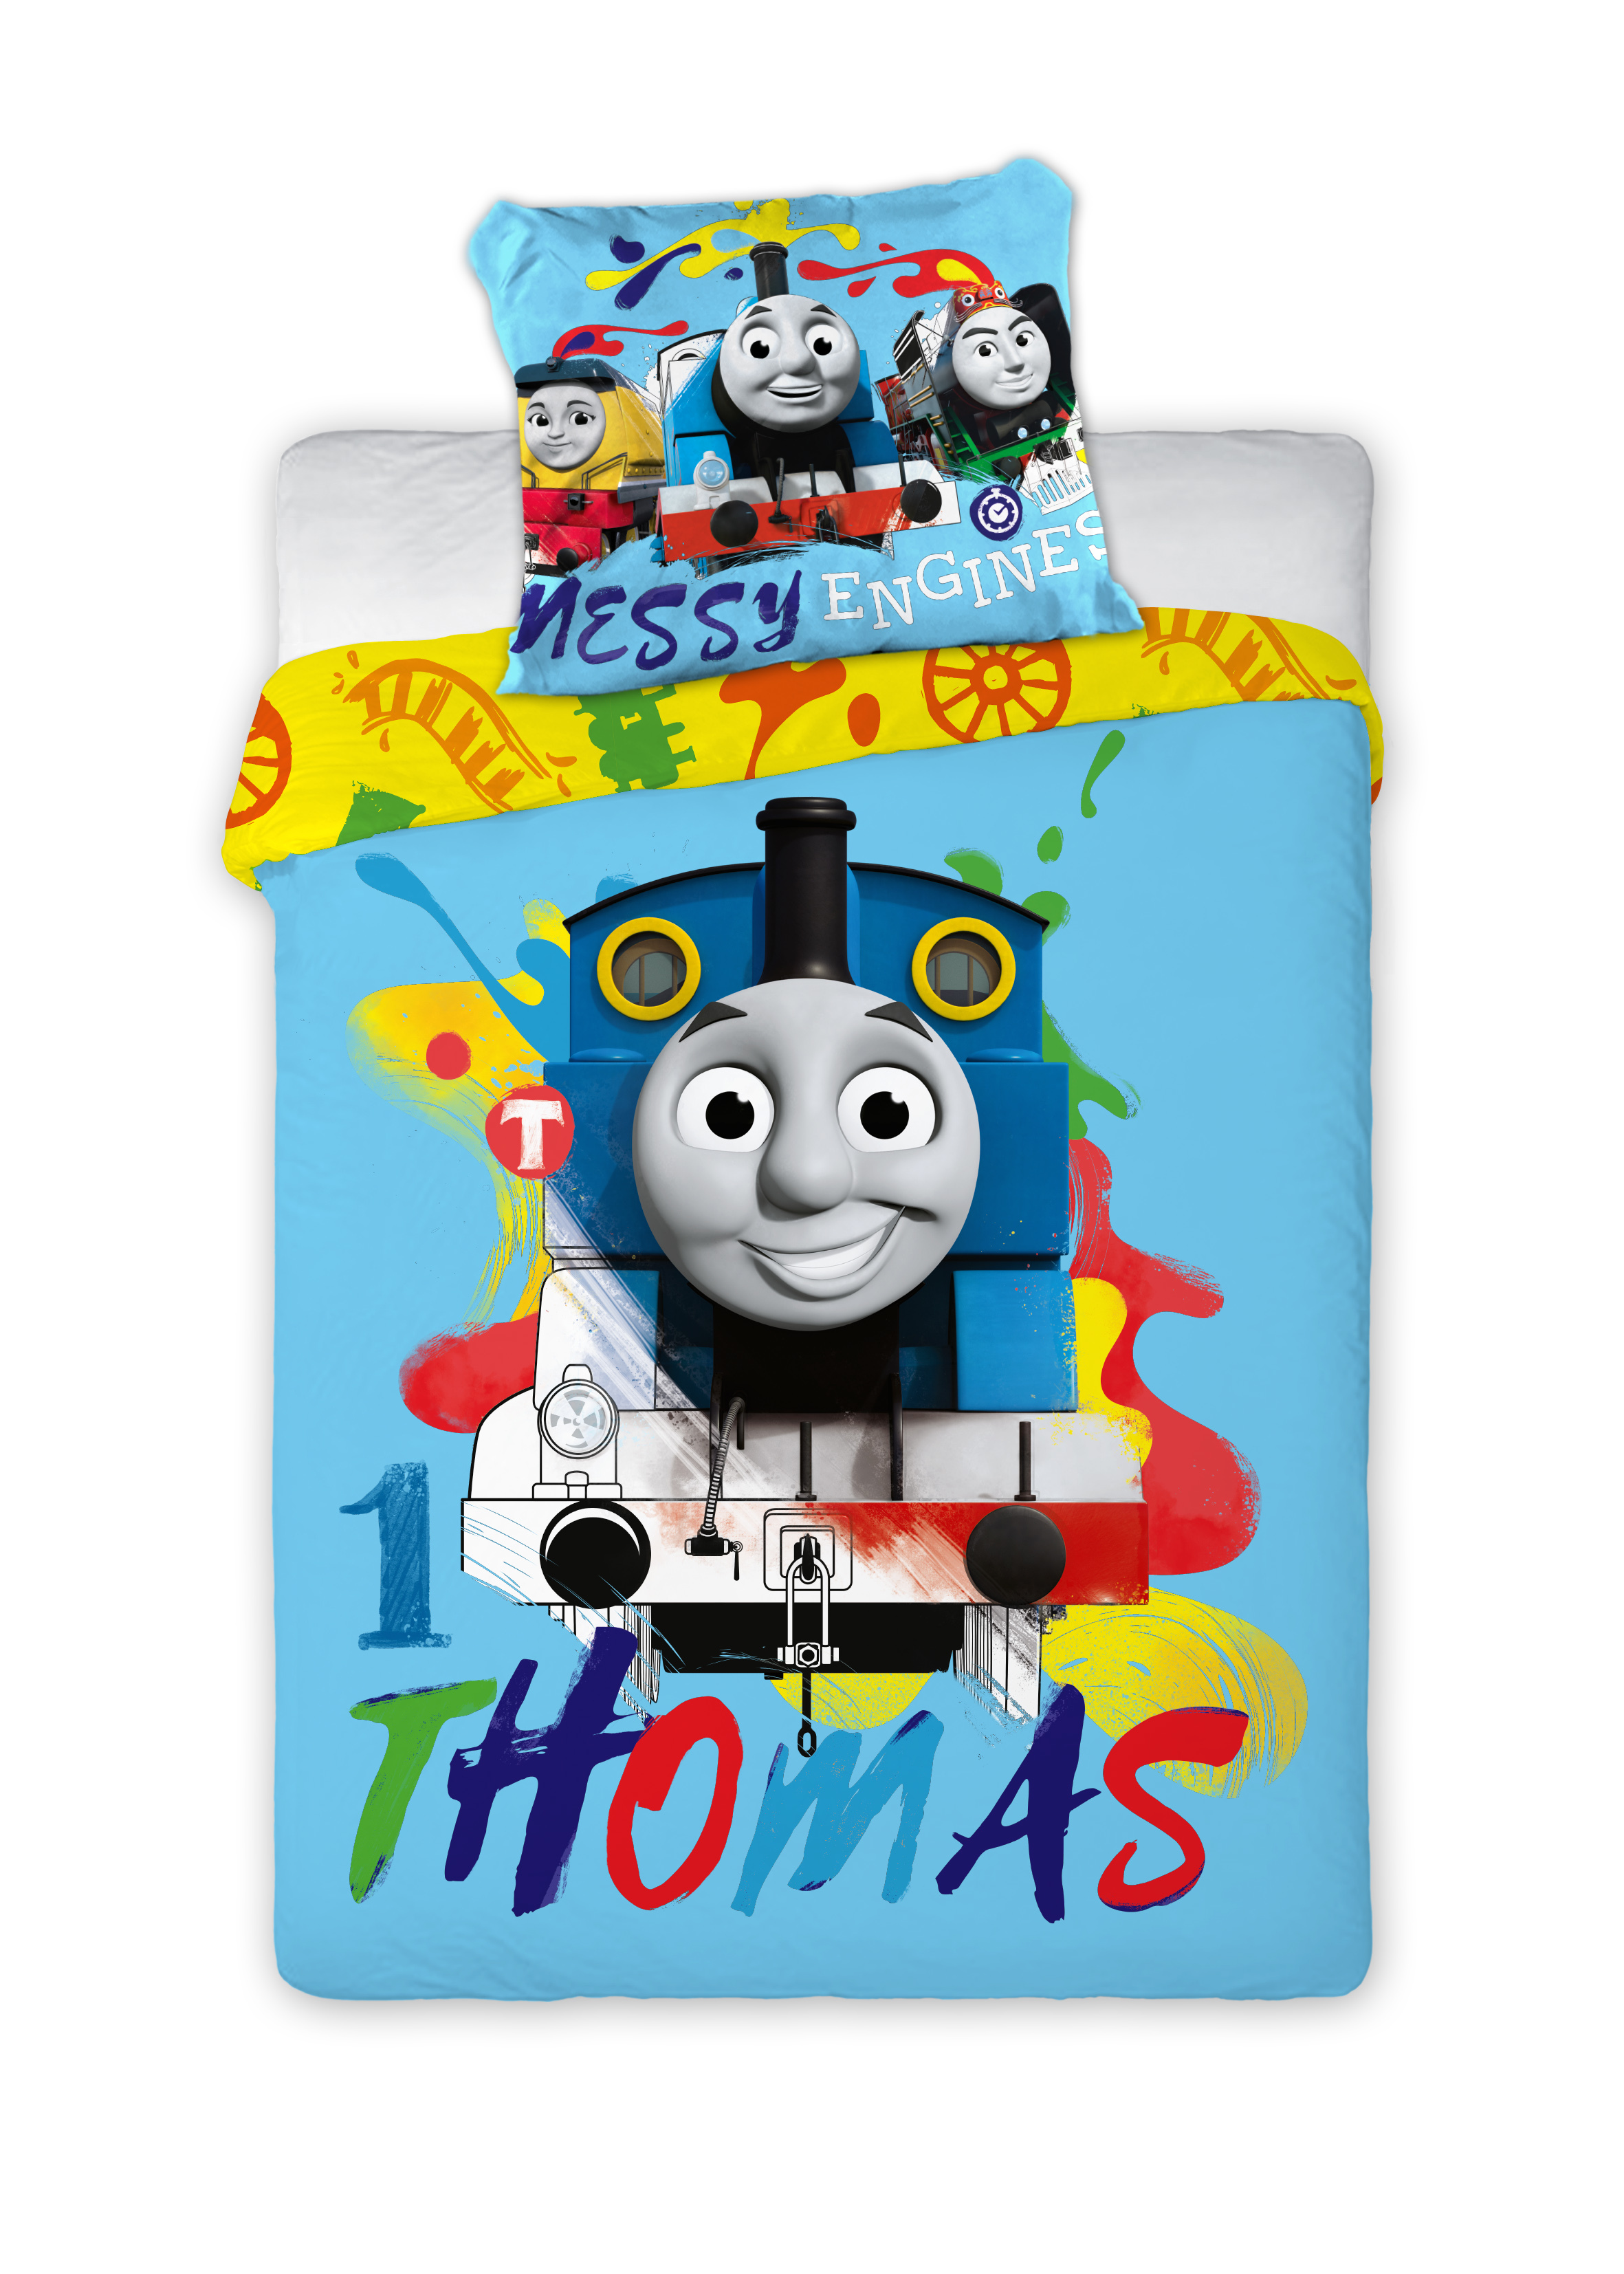 Thomas and Friends 024 Childrens Bedding Baby Bedding 100x135 cm 40x60 cm